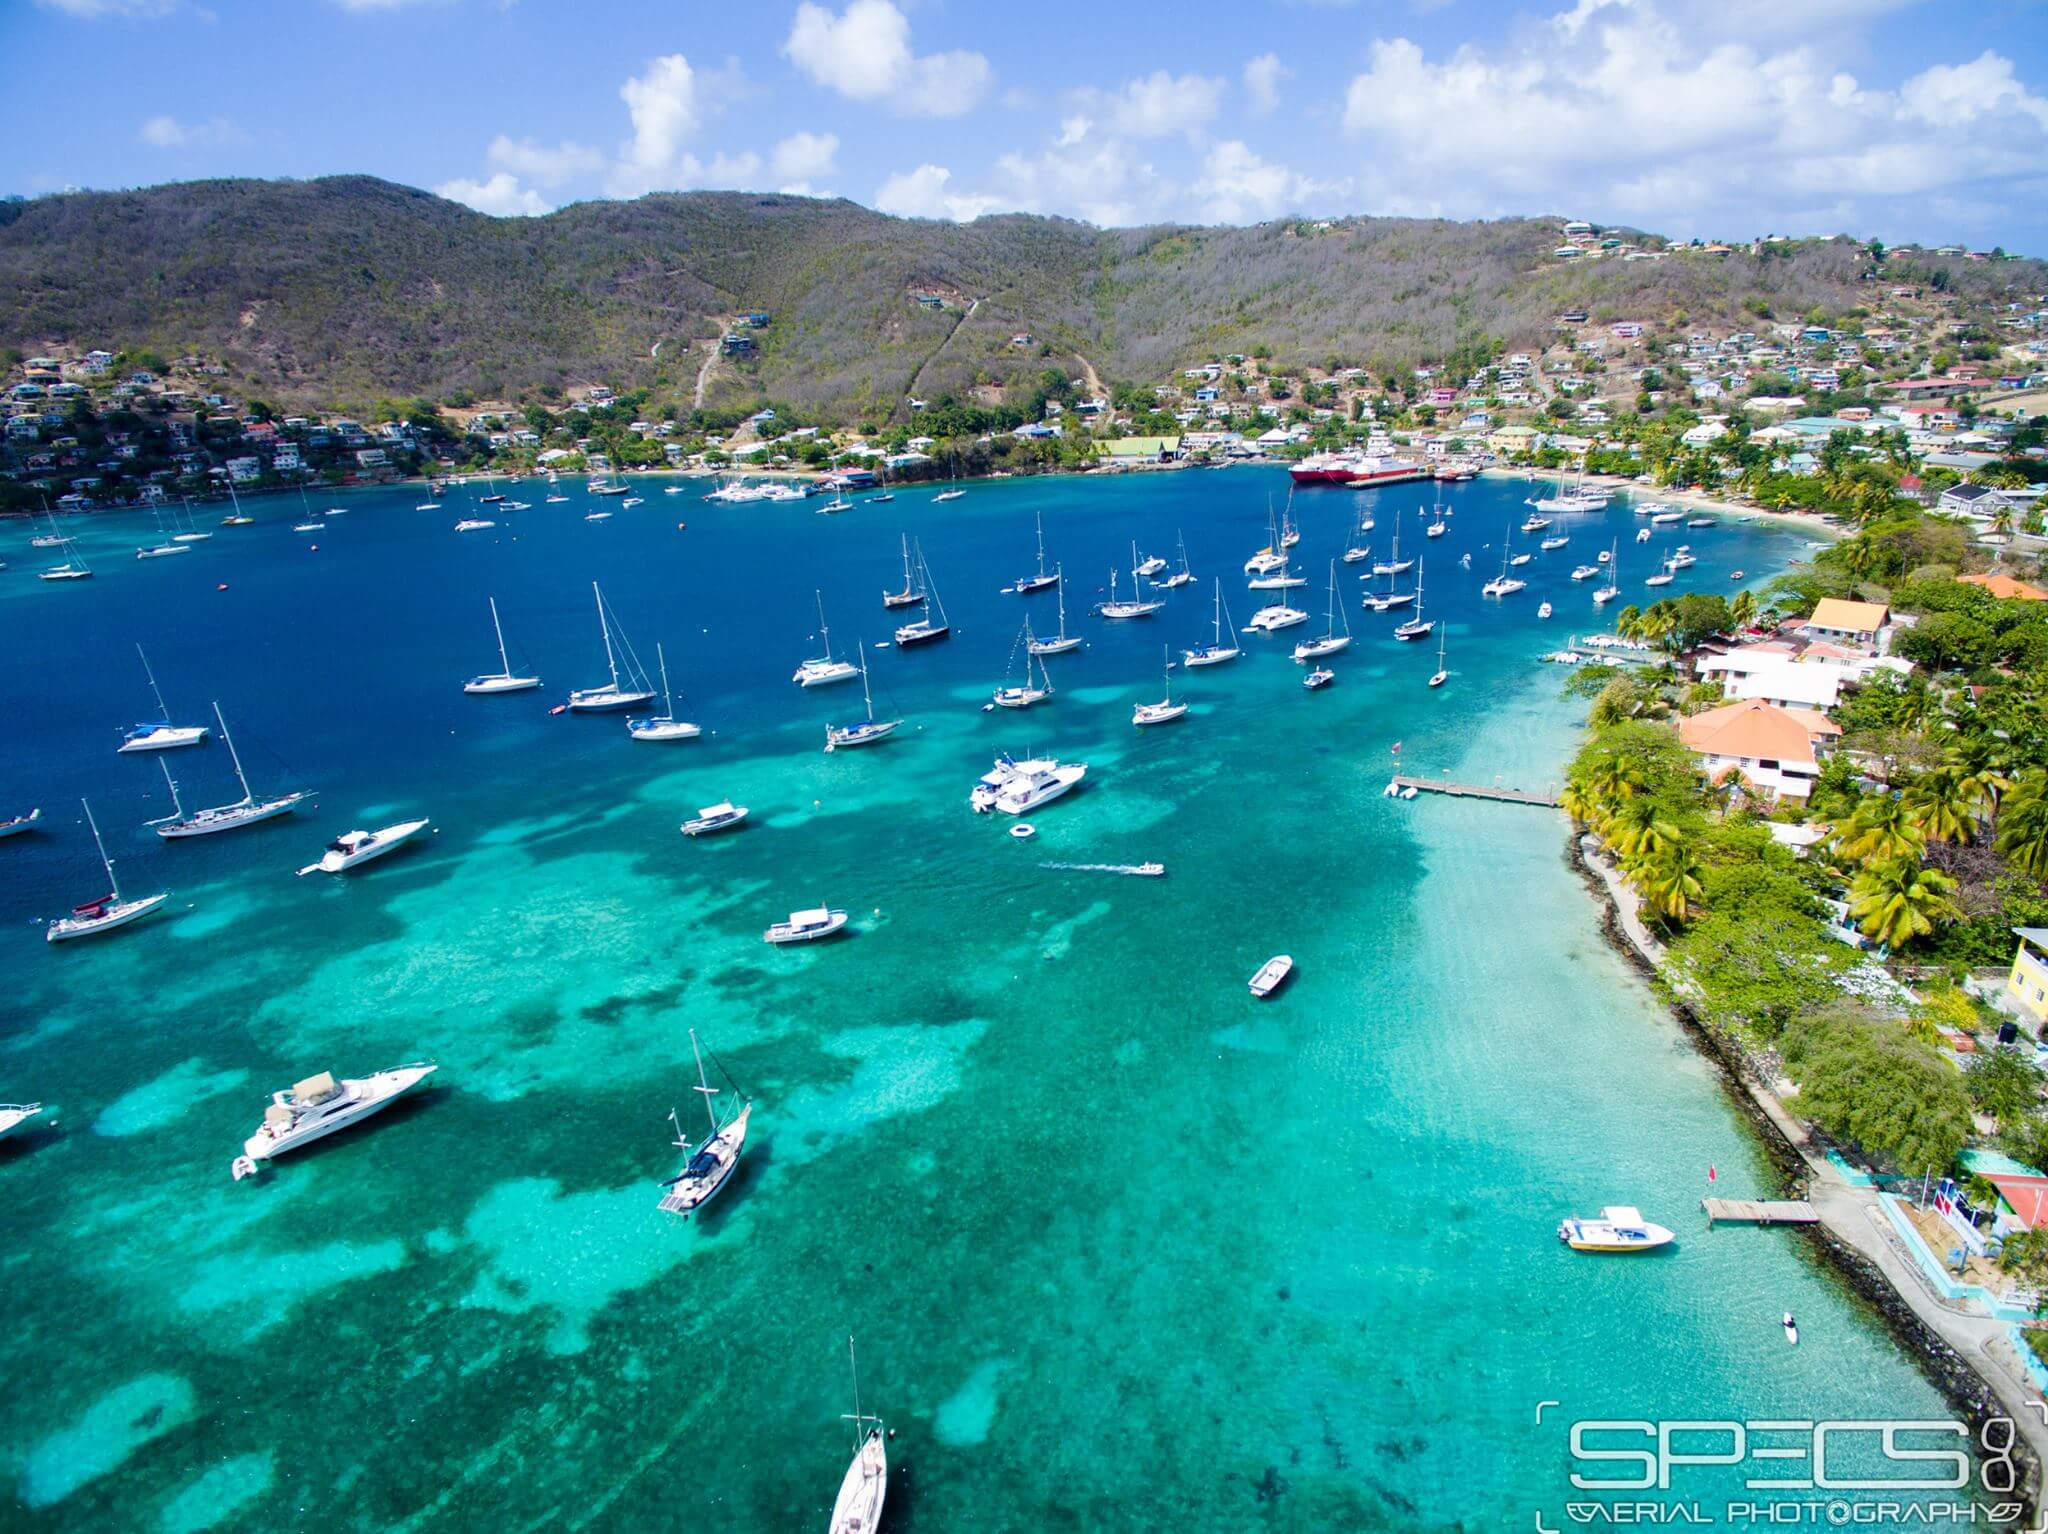 The island of Bequia - Saint Vincent and the Grenadines